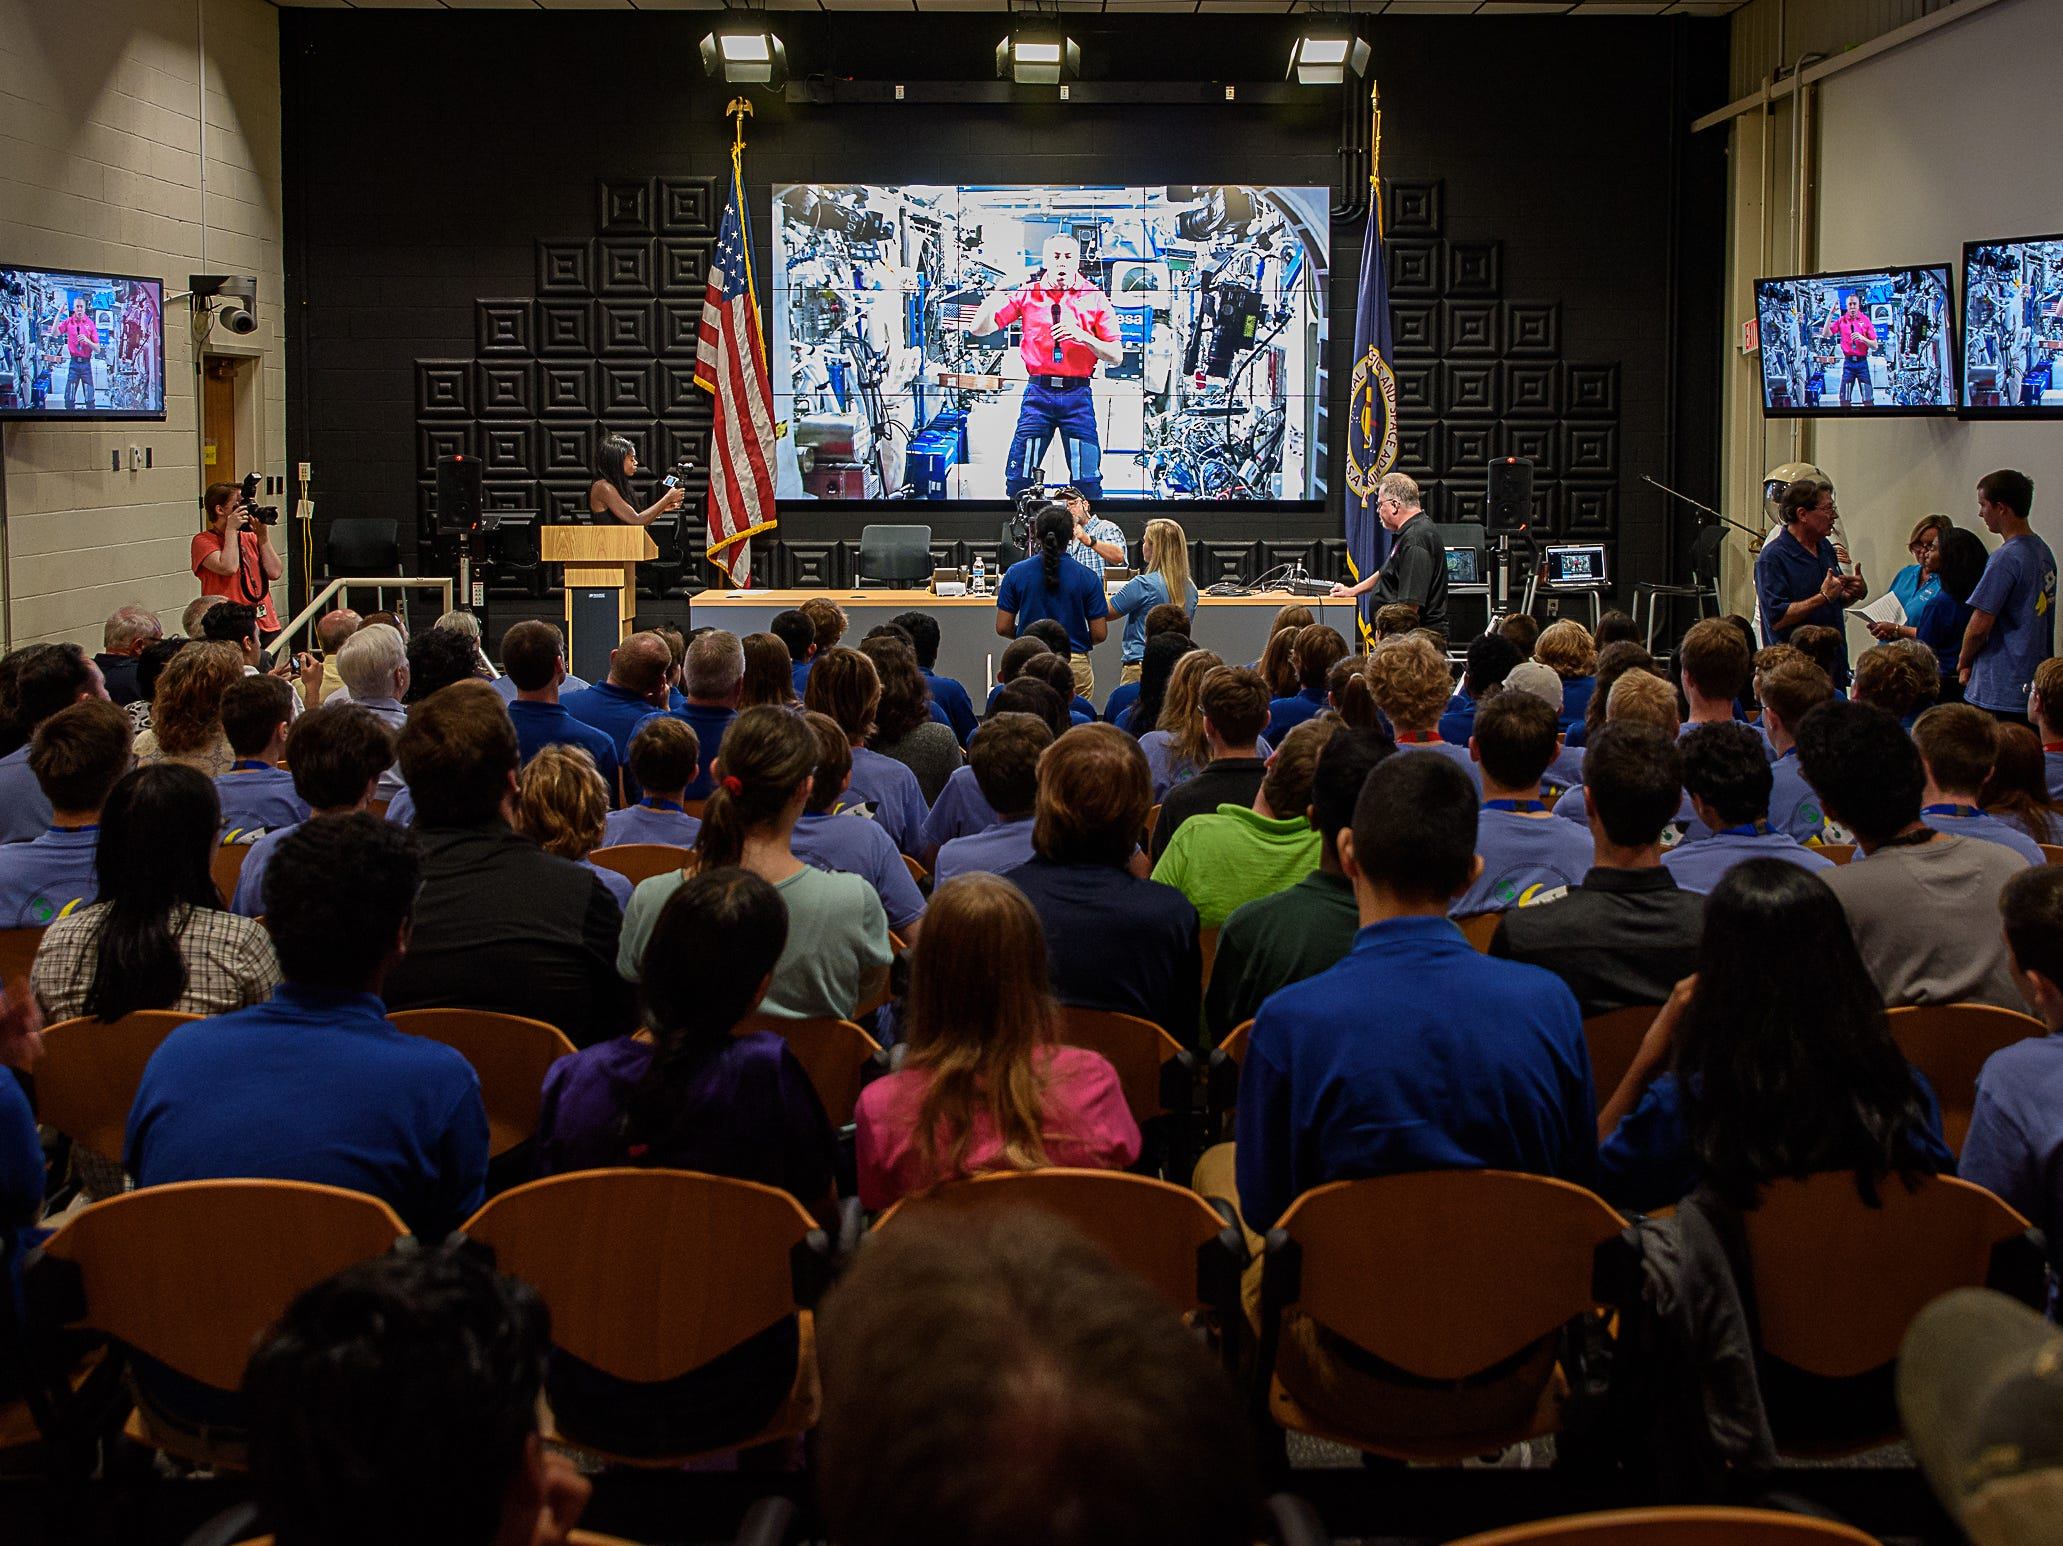 U.S. astronaut Andrew Feustel responds to students at Wallops Flight Facility while aboard the International Space Station as part of NASA's Year of Education on Station program on Aug. 2, 2018.